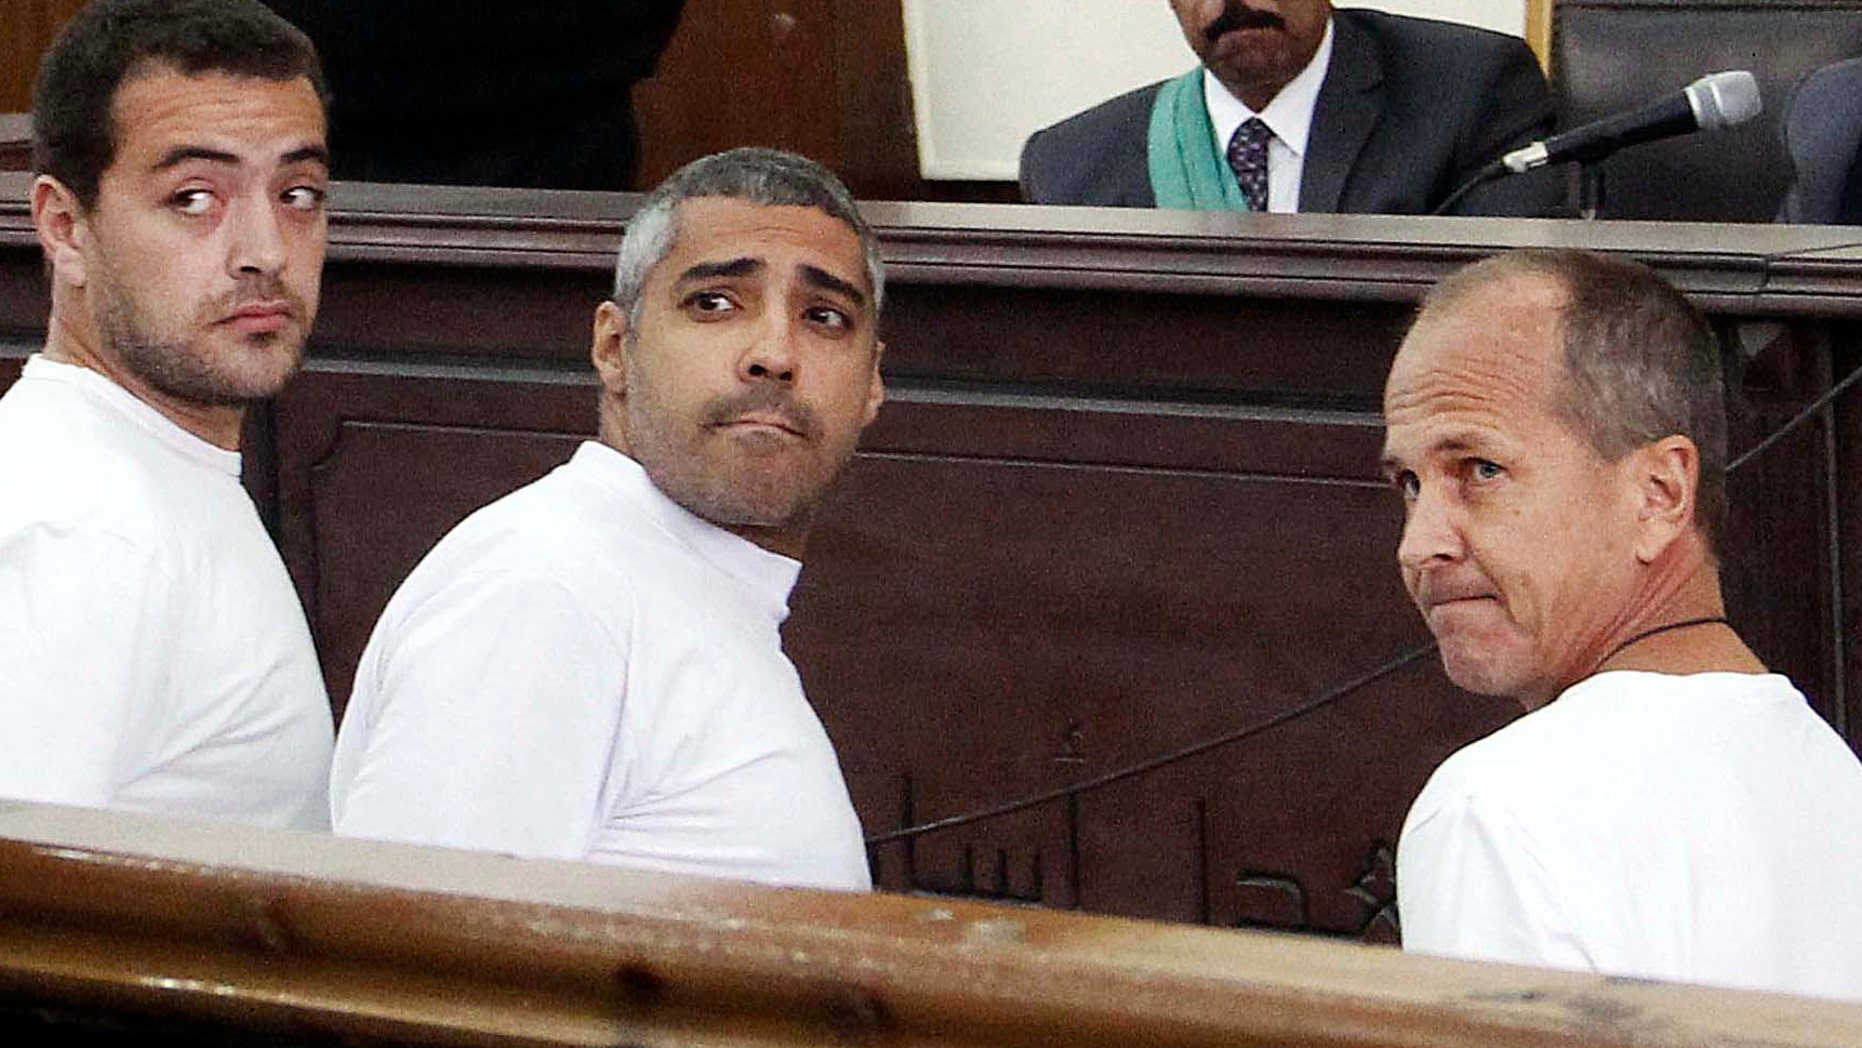 March 31, 2014:  Al-Jazeera English producer Baher Mohamed, left, Canadian-Egyptian acting Cairo bureau chief Mohammed Fahmy, center, and correspondent Peter Greste, right, appear in court along with several other defendants during their trial on terror charges, in Cairo